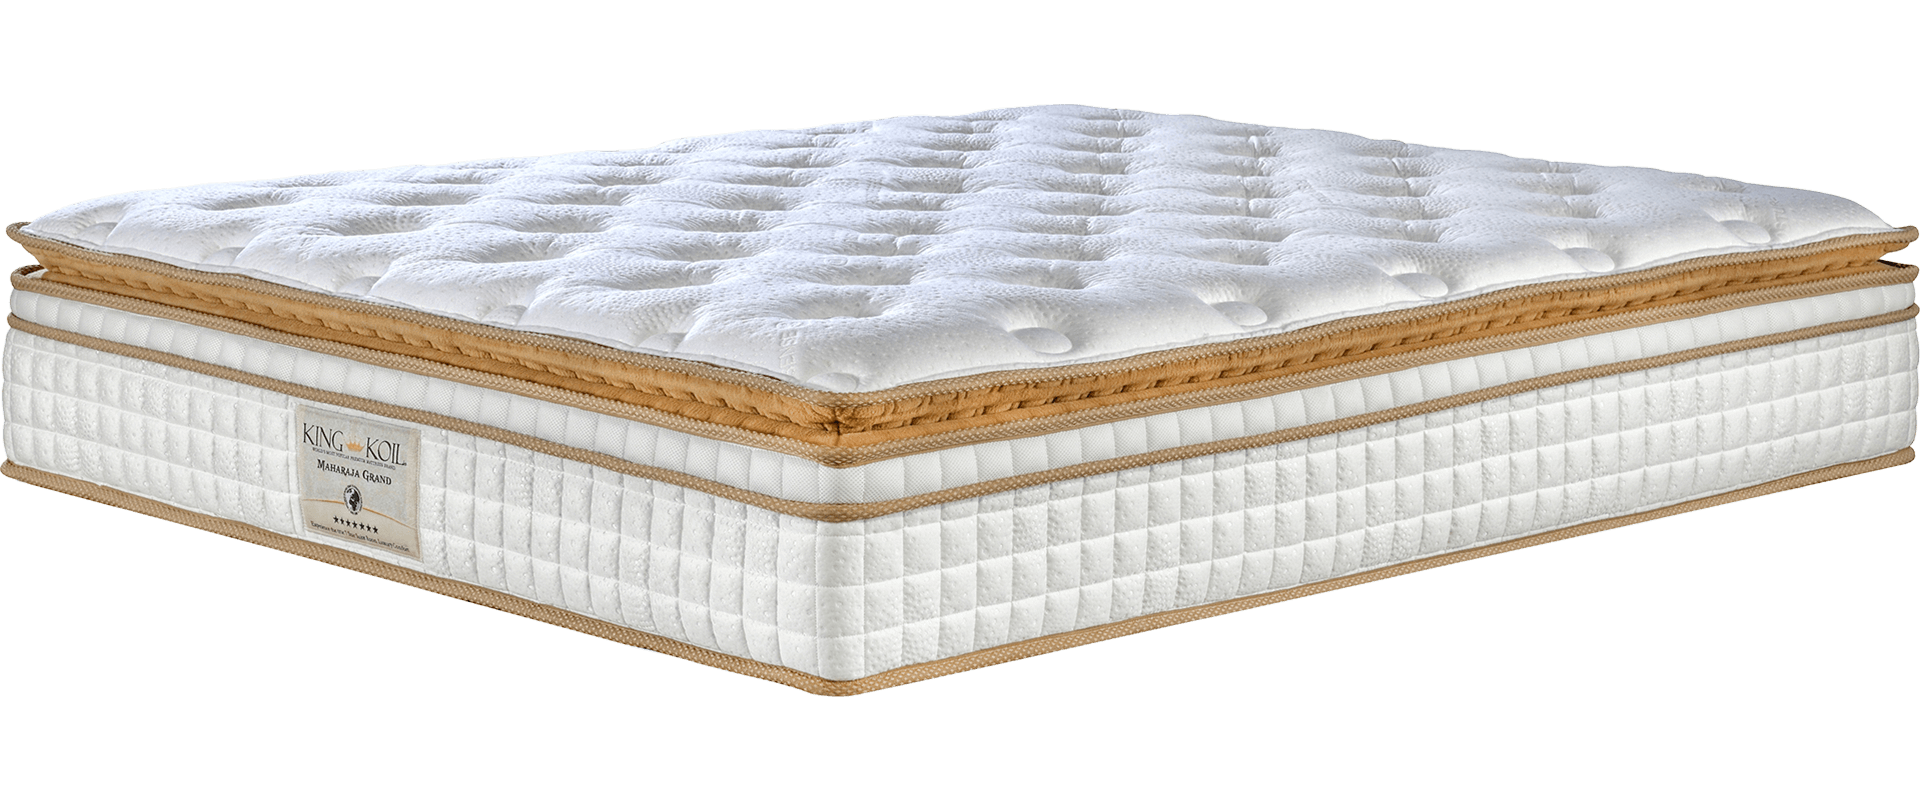 best mattress for hotel